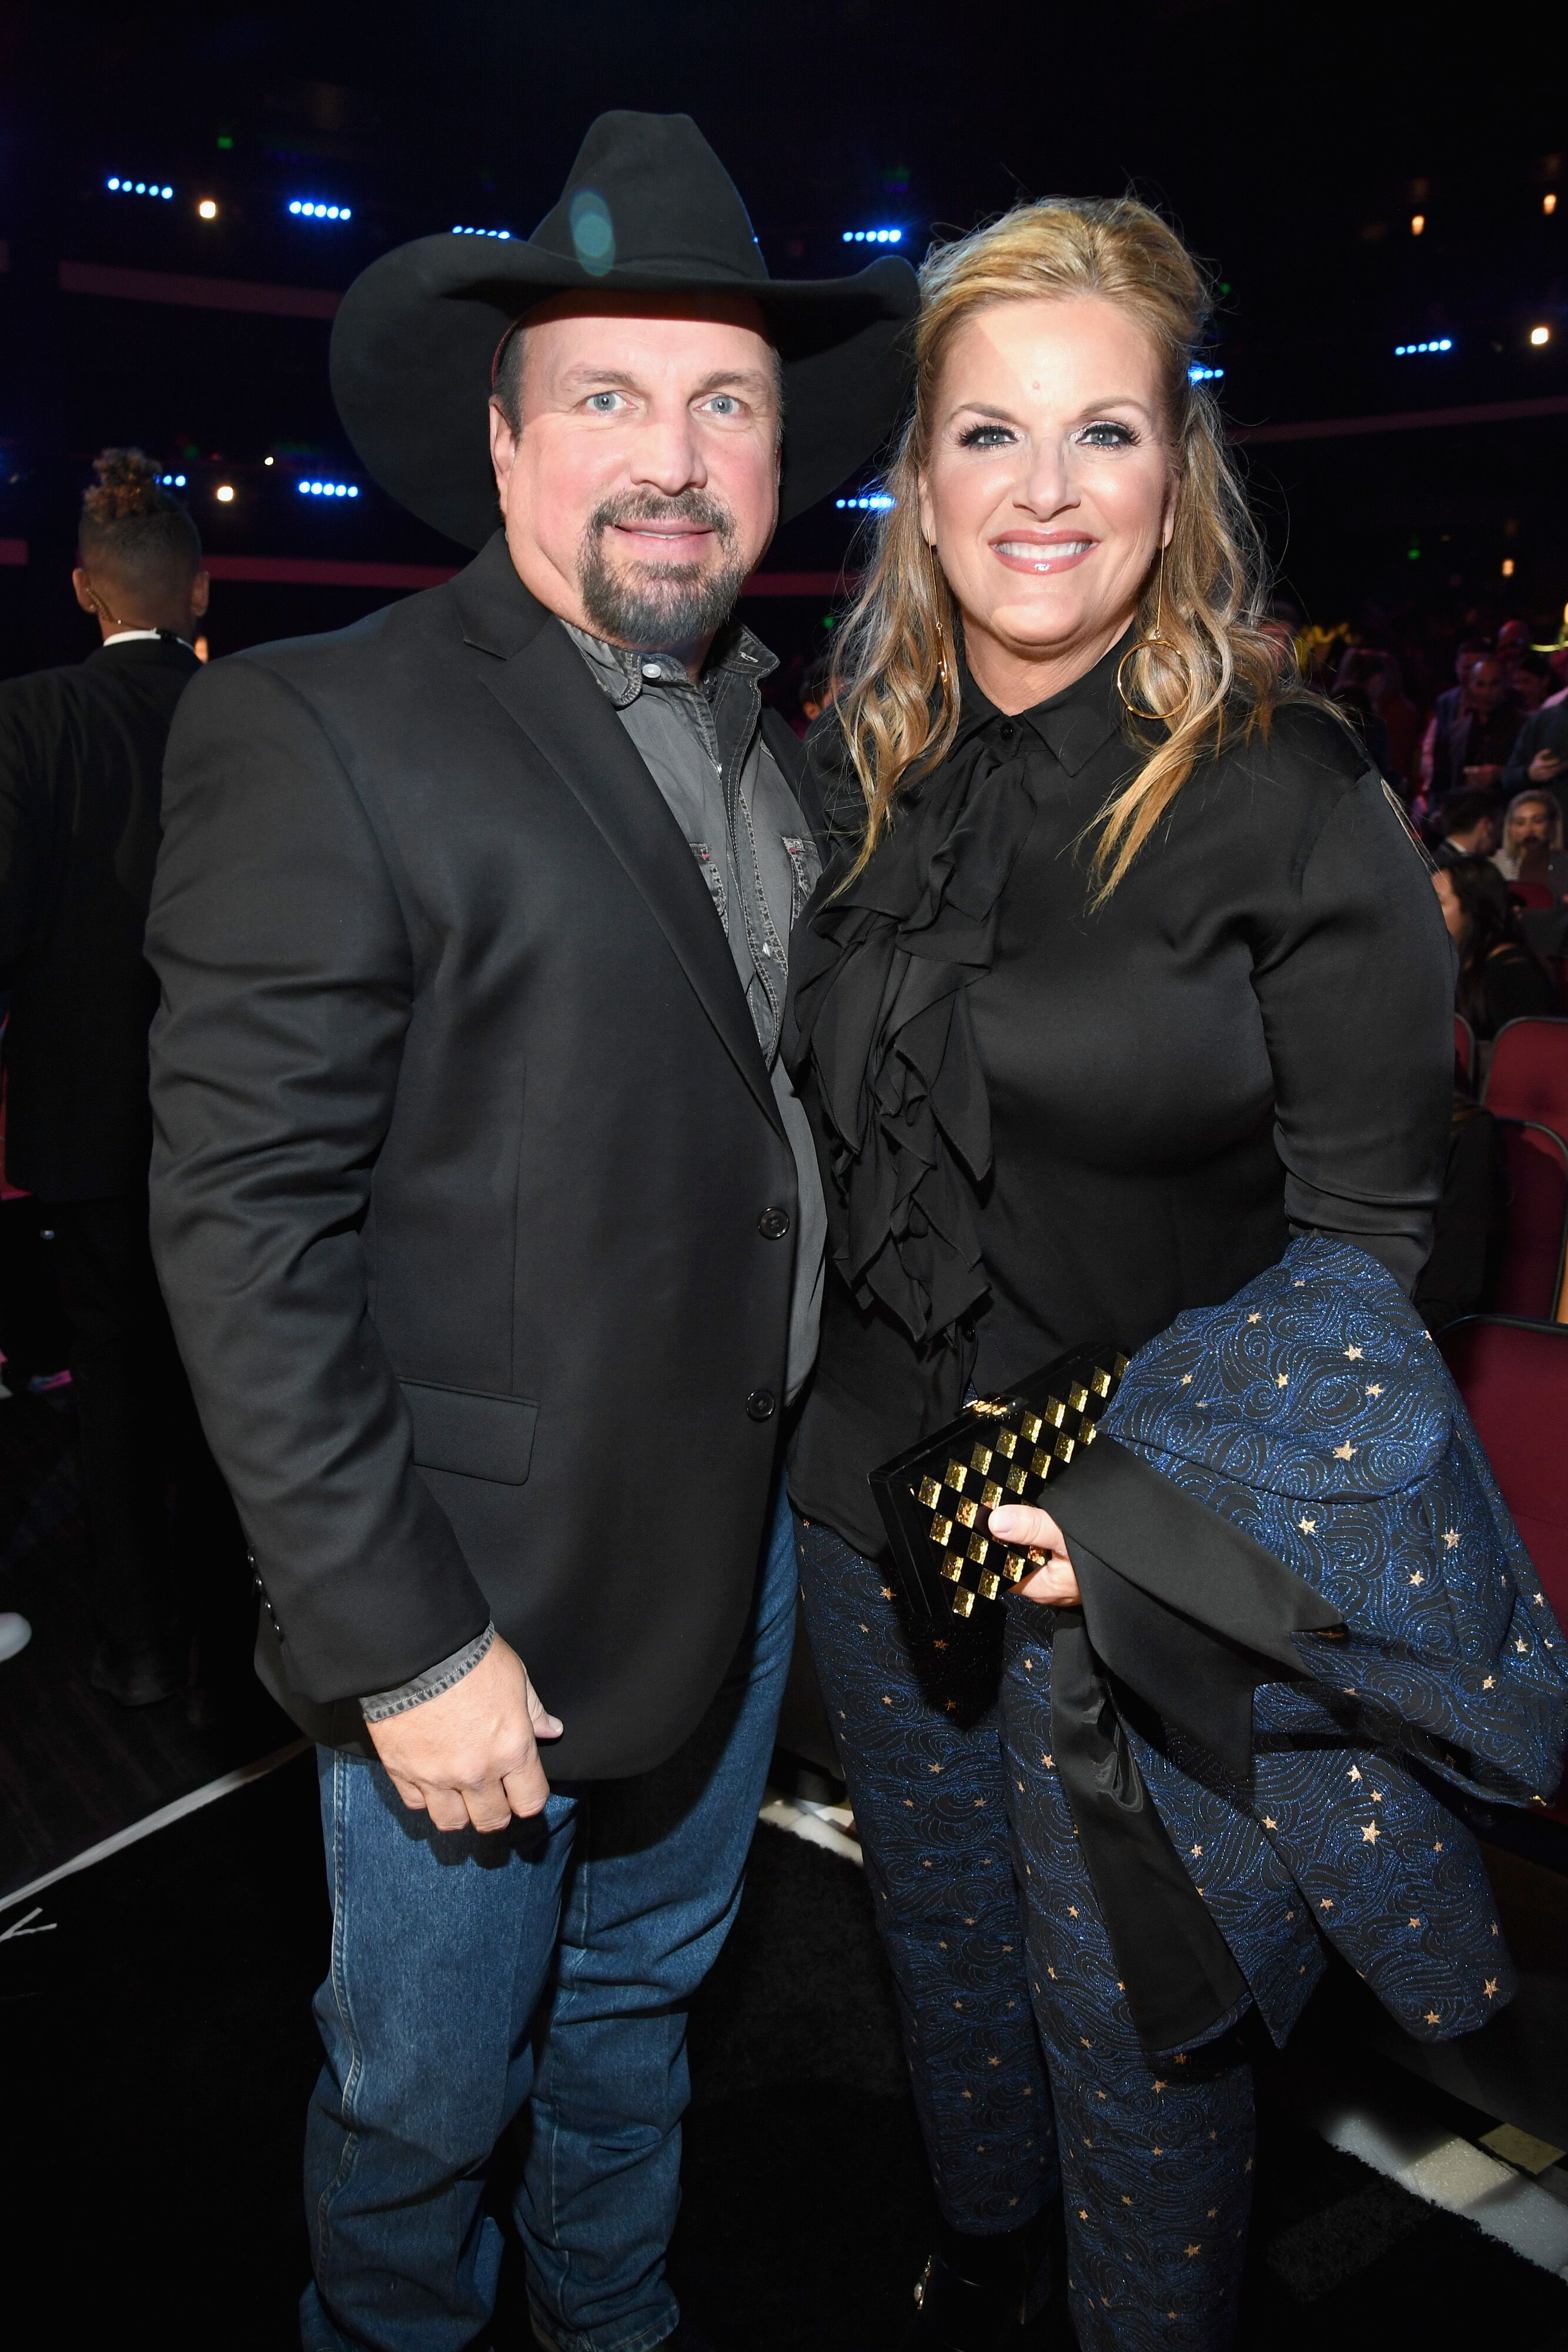 Garth Brooks and Trisha Yearwood attend the 2019 iHeartRadio Music Awards. | Source: Getty Images